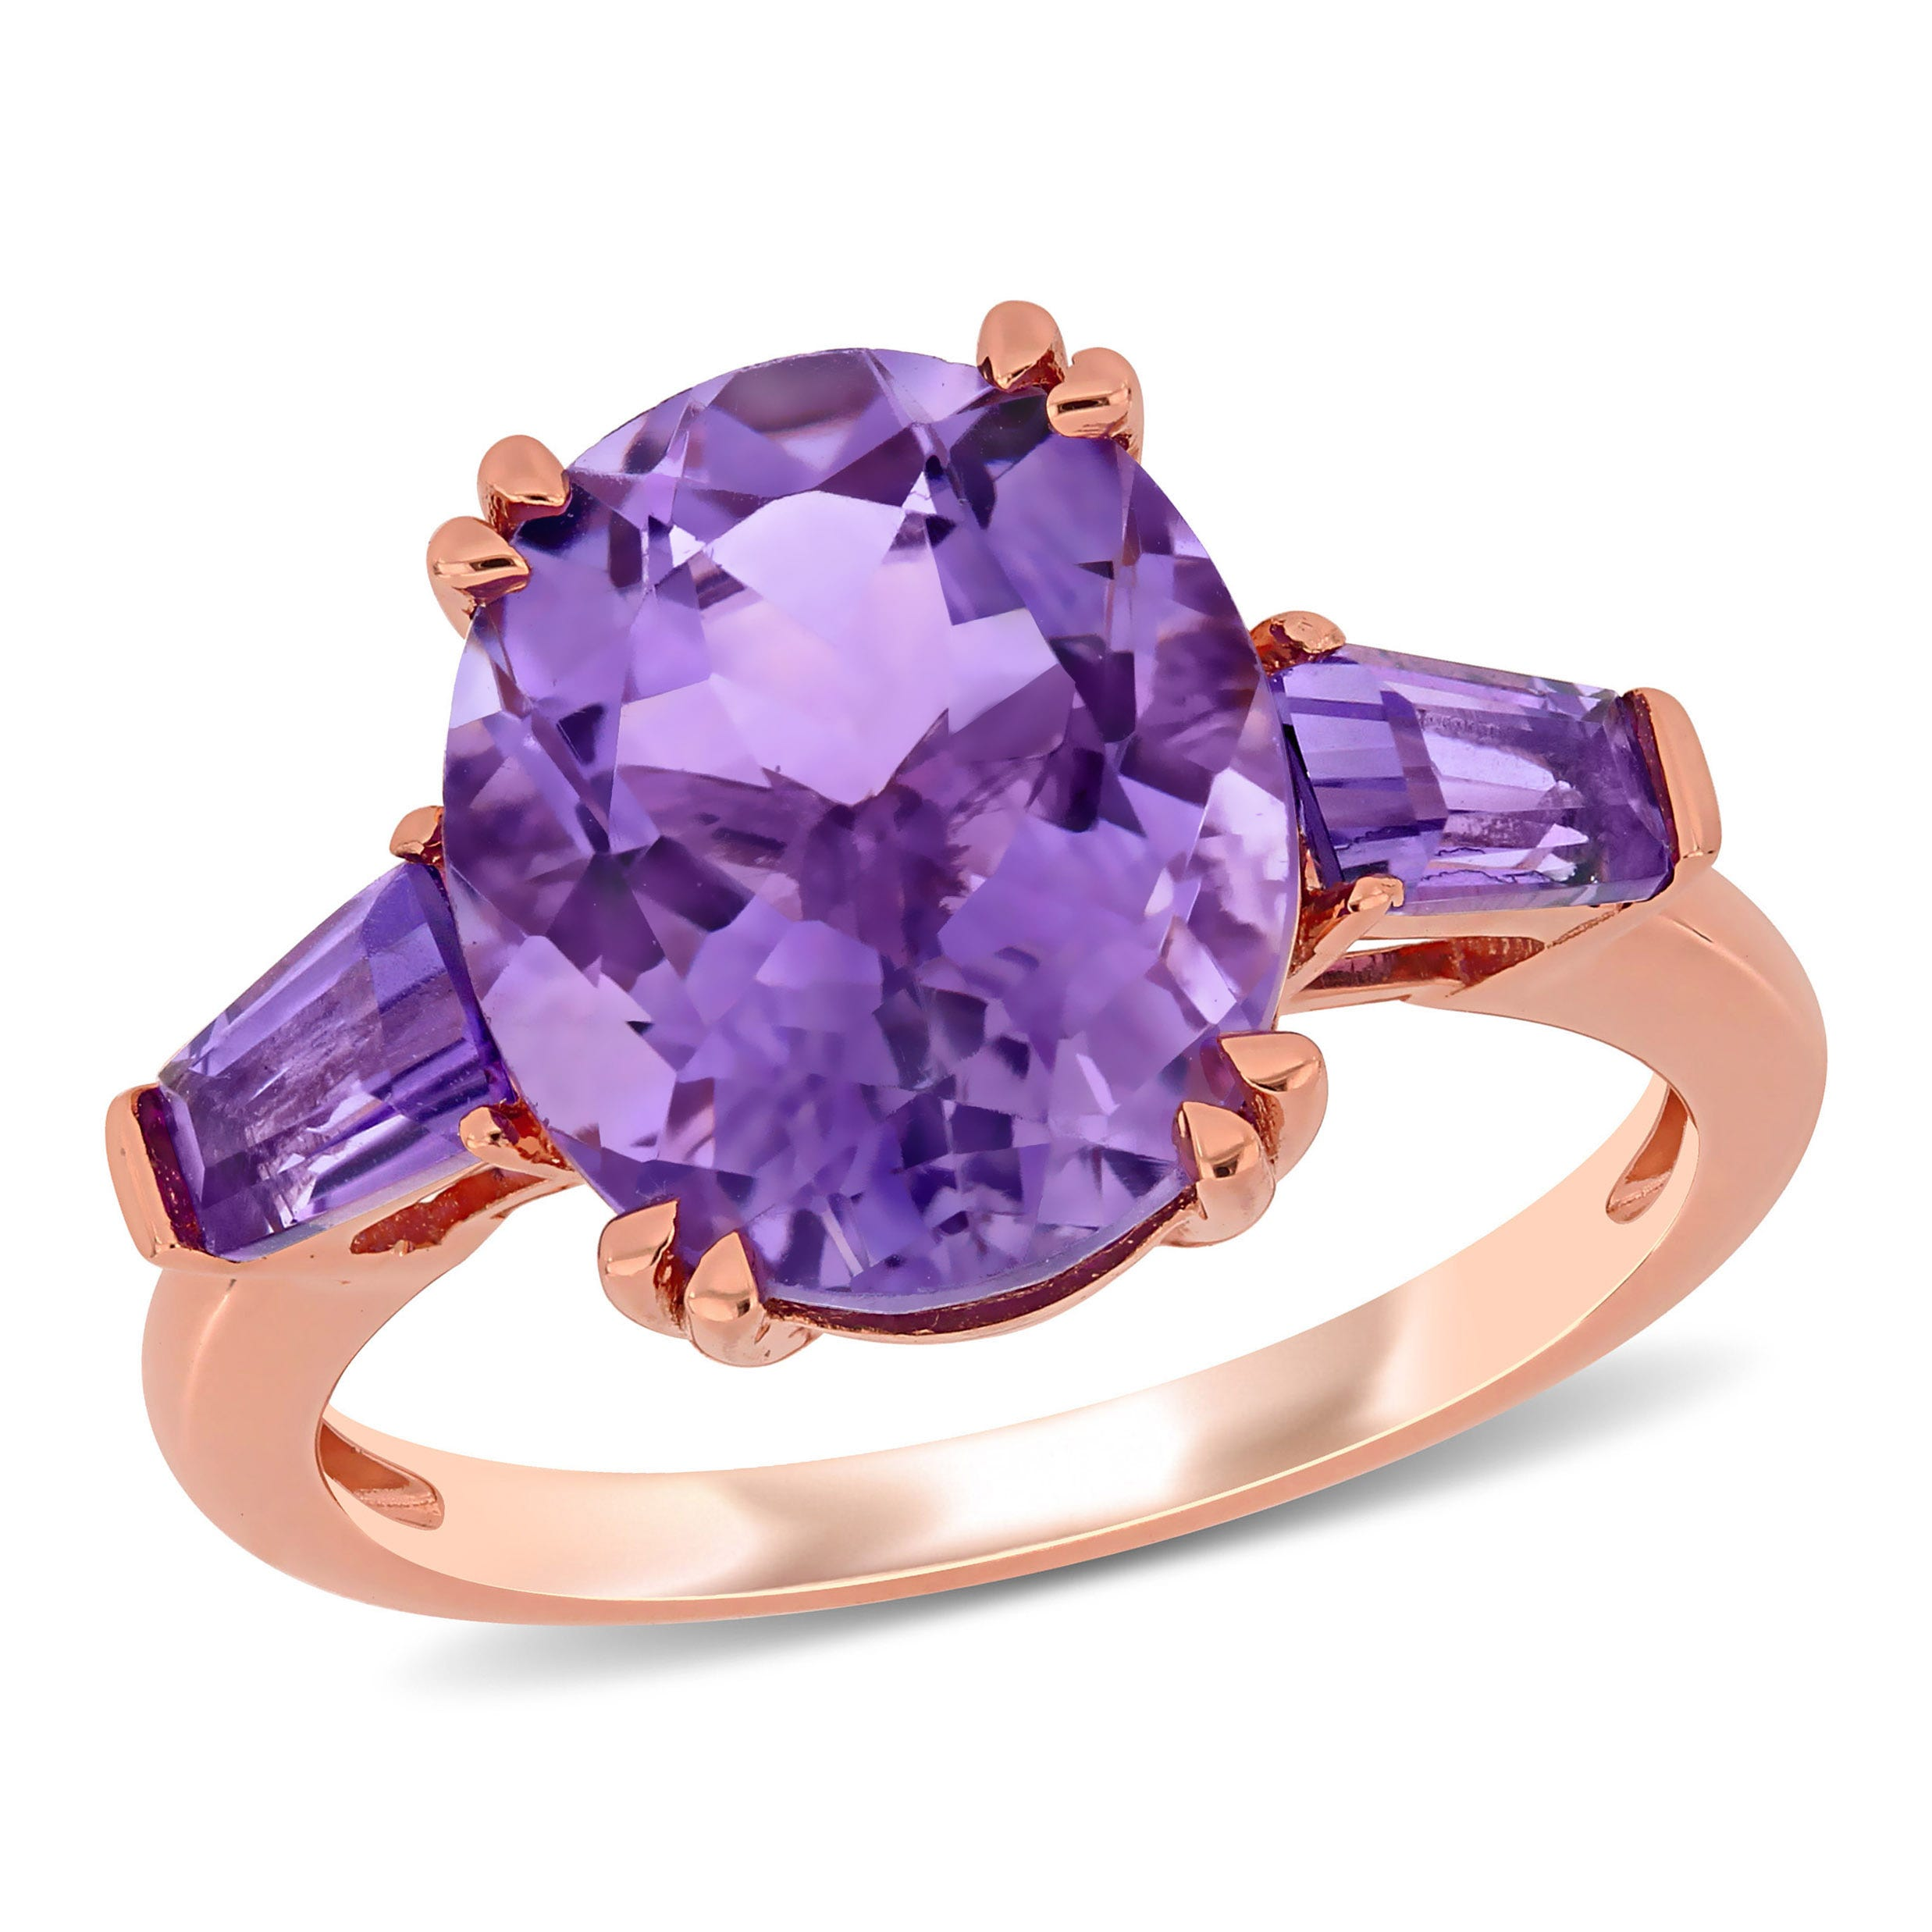 Oval 4 3/8ctw Amethyst Ring in 14k Rose Gold